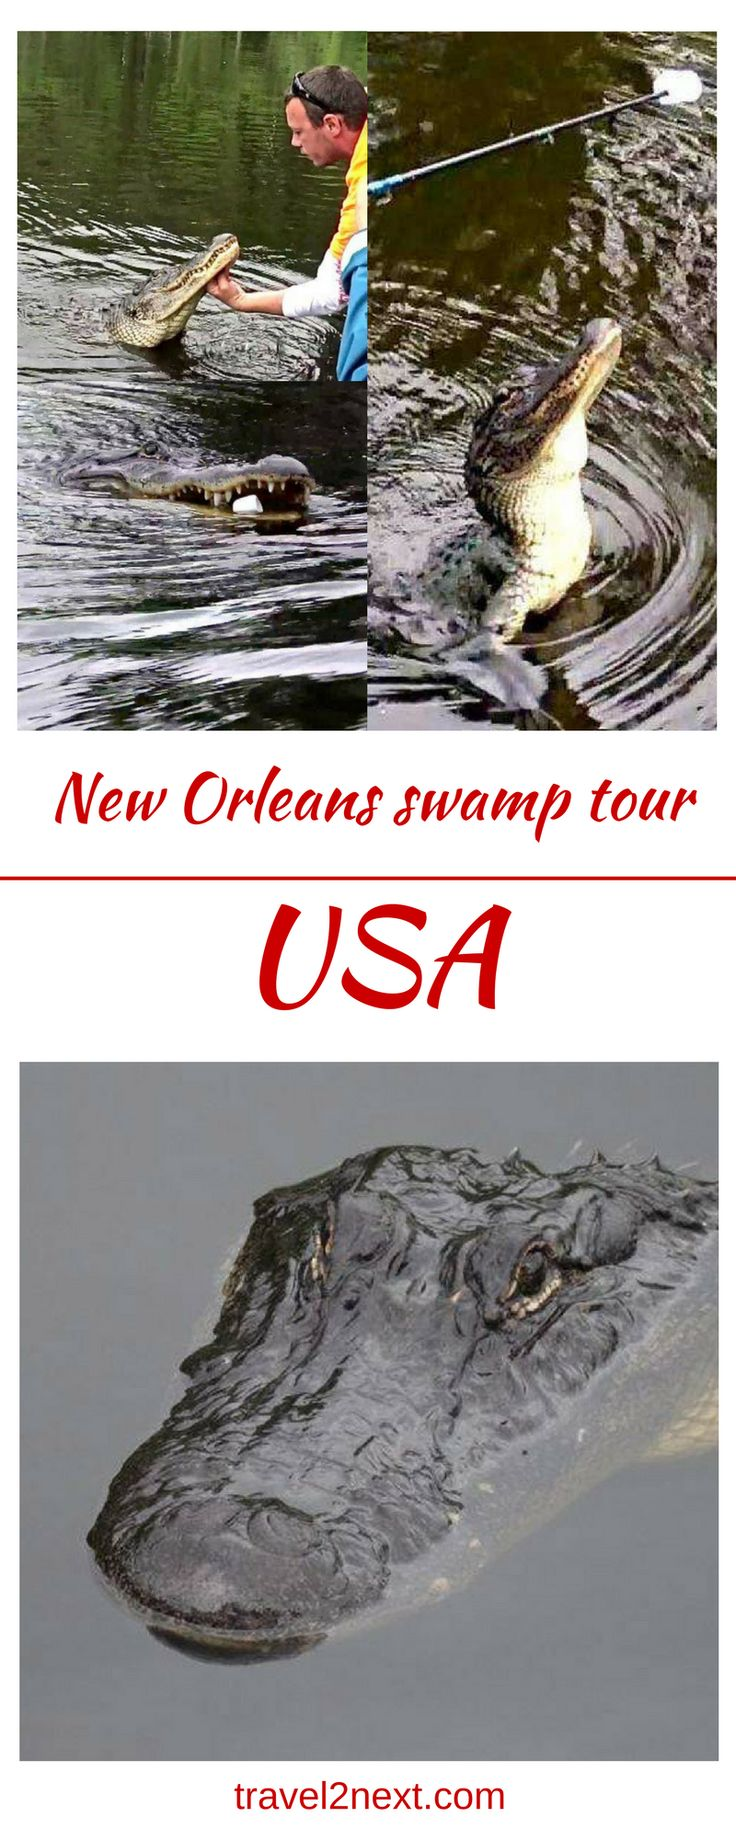 The Ultimate Swamp Tour in New Orleans. Things to do with a week in New Orleans? Well, official tours include haunted, ghost, voodoo, cemetery, post-Katrina and city tours, and then, there's a swamp tour.